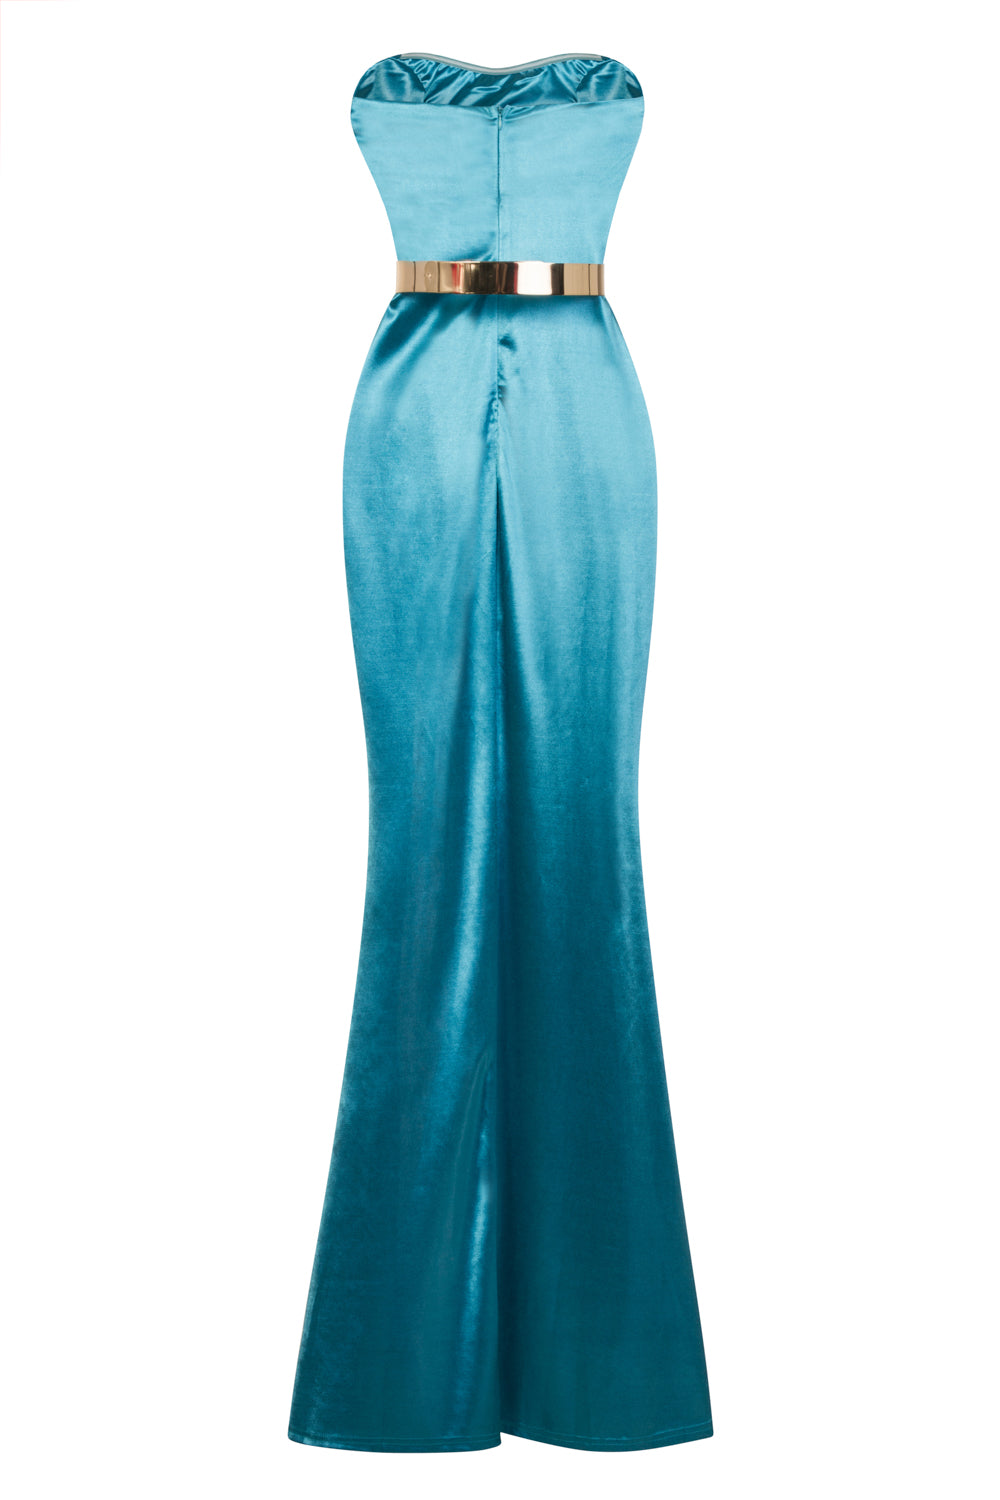 Versace Turquoise Gold Belted Slinky Satin Thigh Slit Maxi Dress